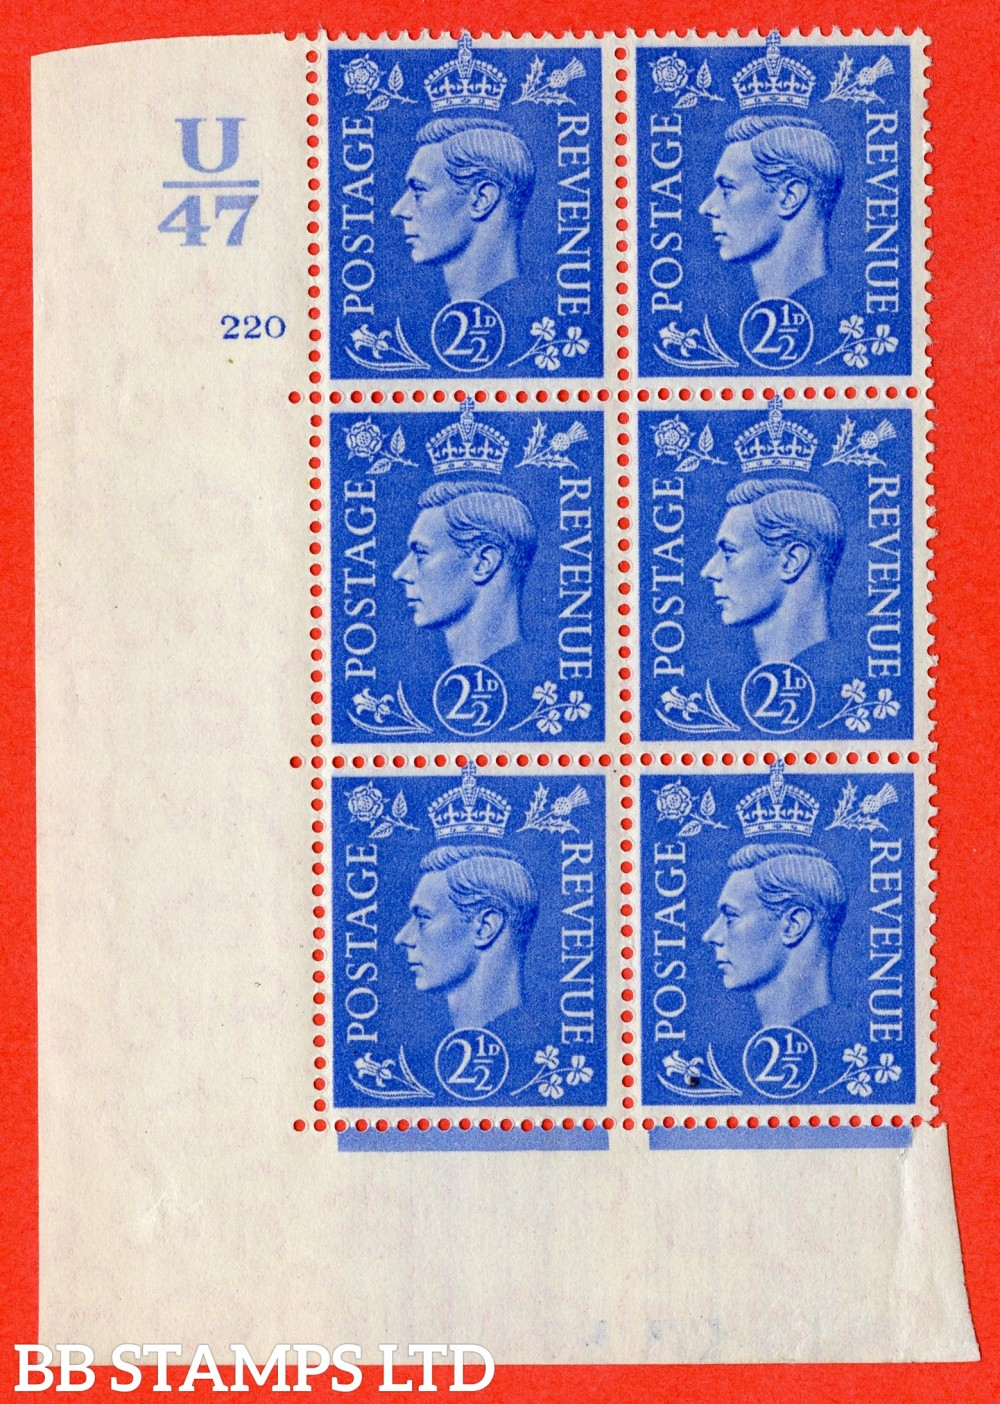 "SG. 489. Q14. 2½d Light ultramarine. A superb UNMOUNTED MINT "" Control U47 cylinder 220 no dot "" control block of 6 with perf type 5 E/I"